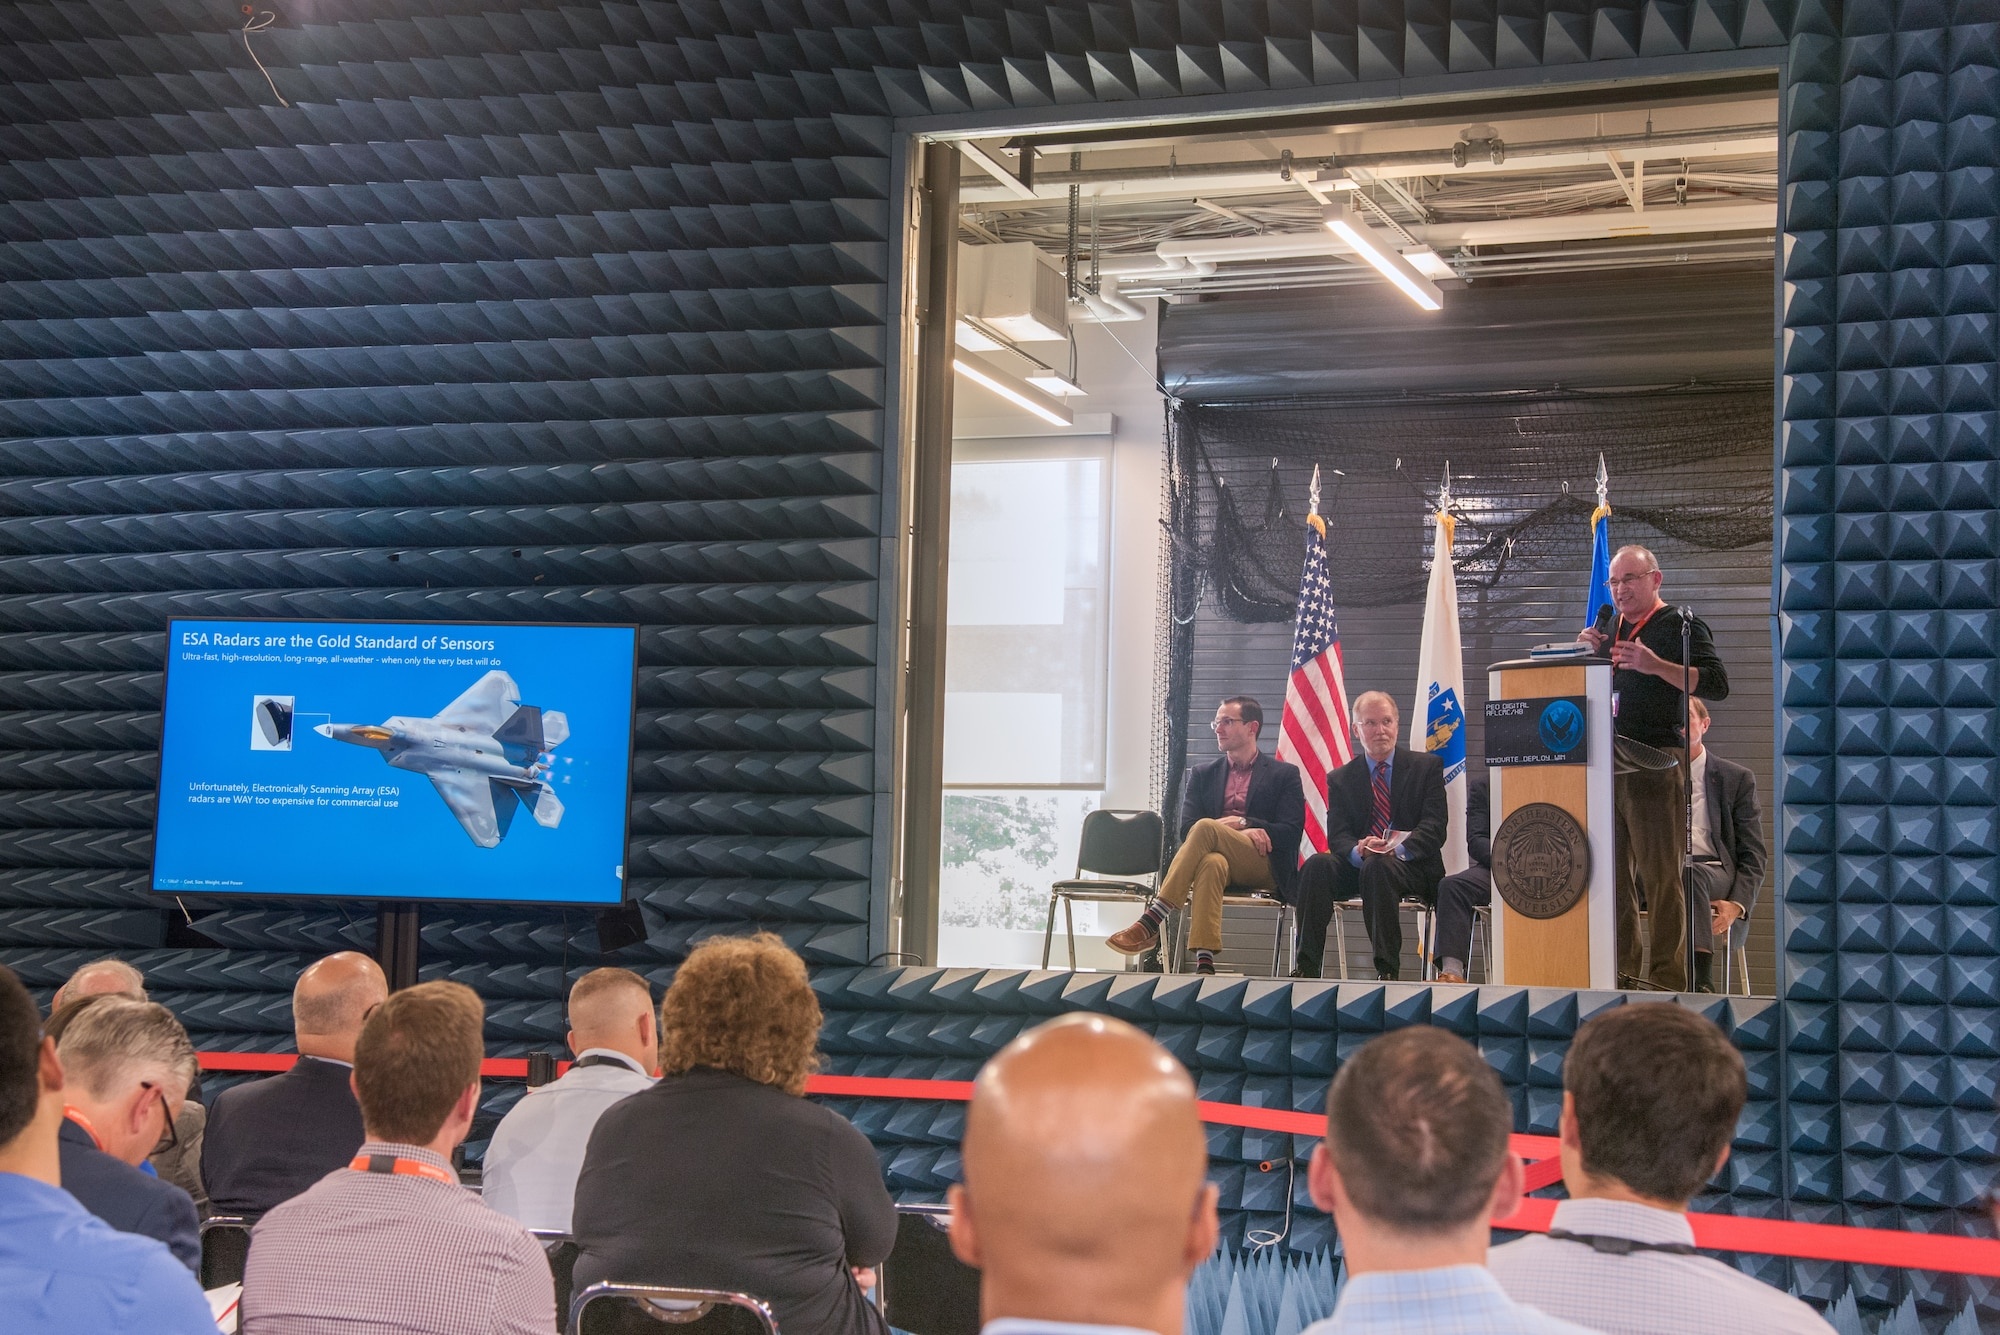 From Right: Jeff Finan, vice president of business development for Washington-based Echodyne Corp., presents radar technology information after earning an on-the-spot contract for development with the U.S. Air Force during Unmanned Aerial Systems Pitch Day, July 24, at Northeastern University's Innovation Campus as Steven Wert, program executive officer Digital, and Dr. William Roper, Air Force assistant secretary for Acquisition, Technology and Logistics, look on from the stage. (U.S. Air Force photo by Todd Maki)